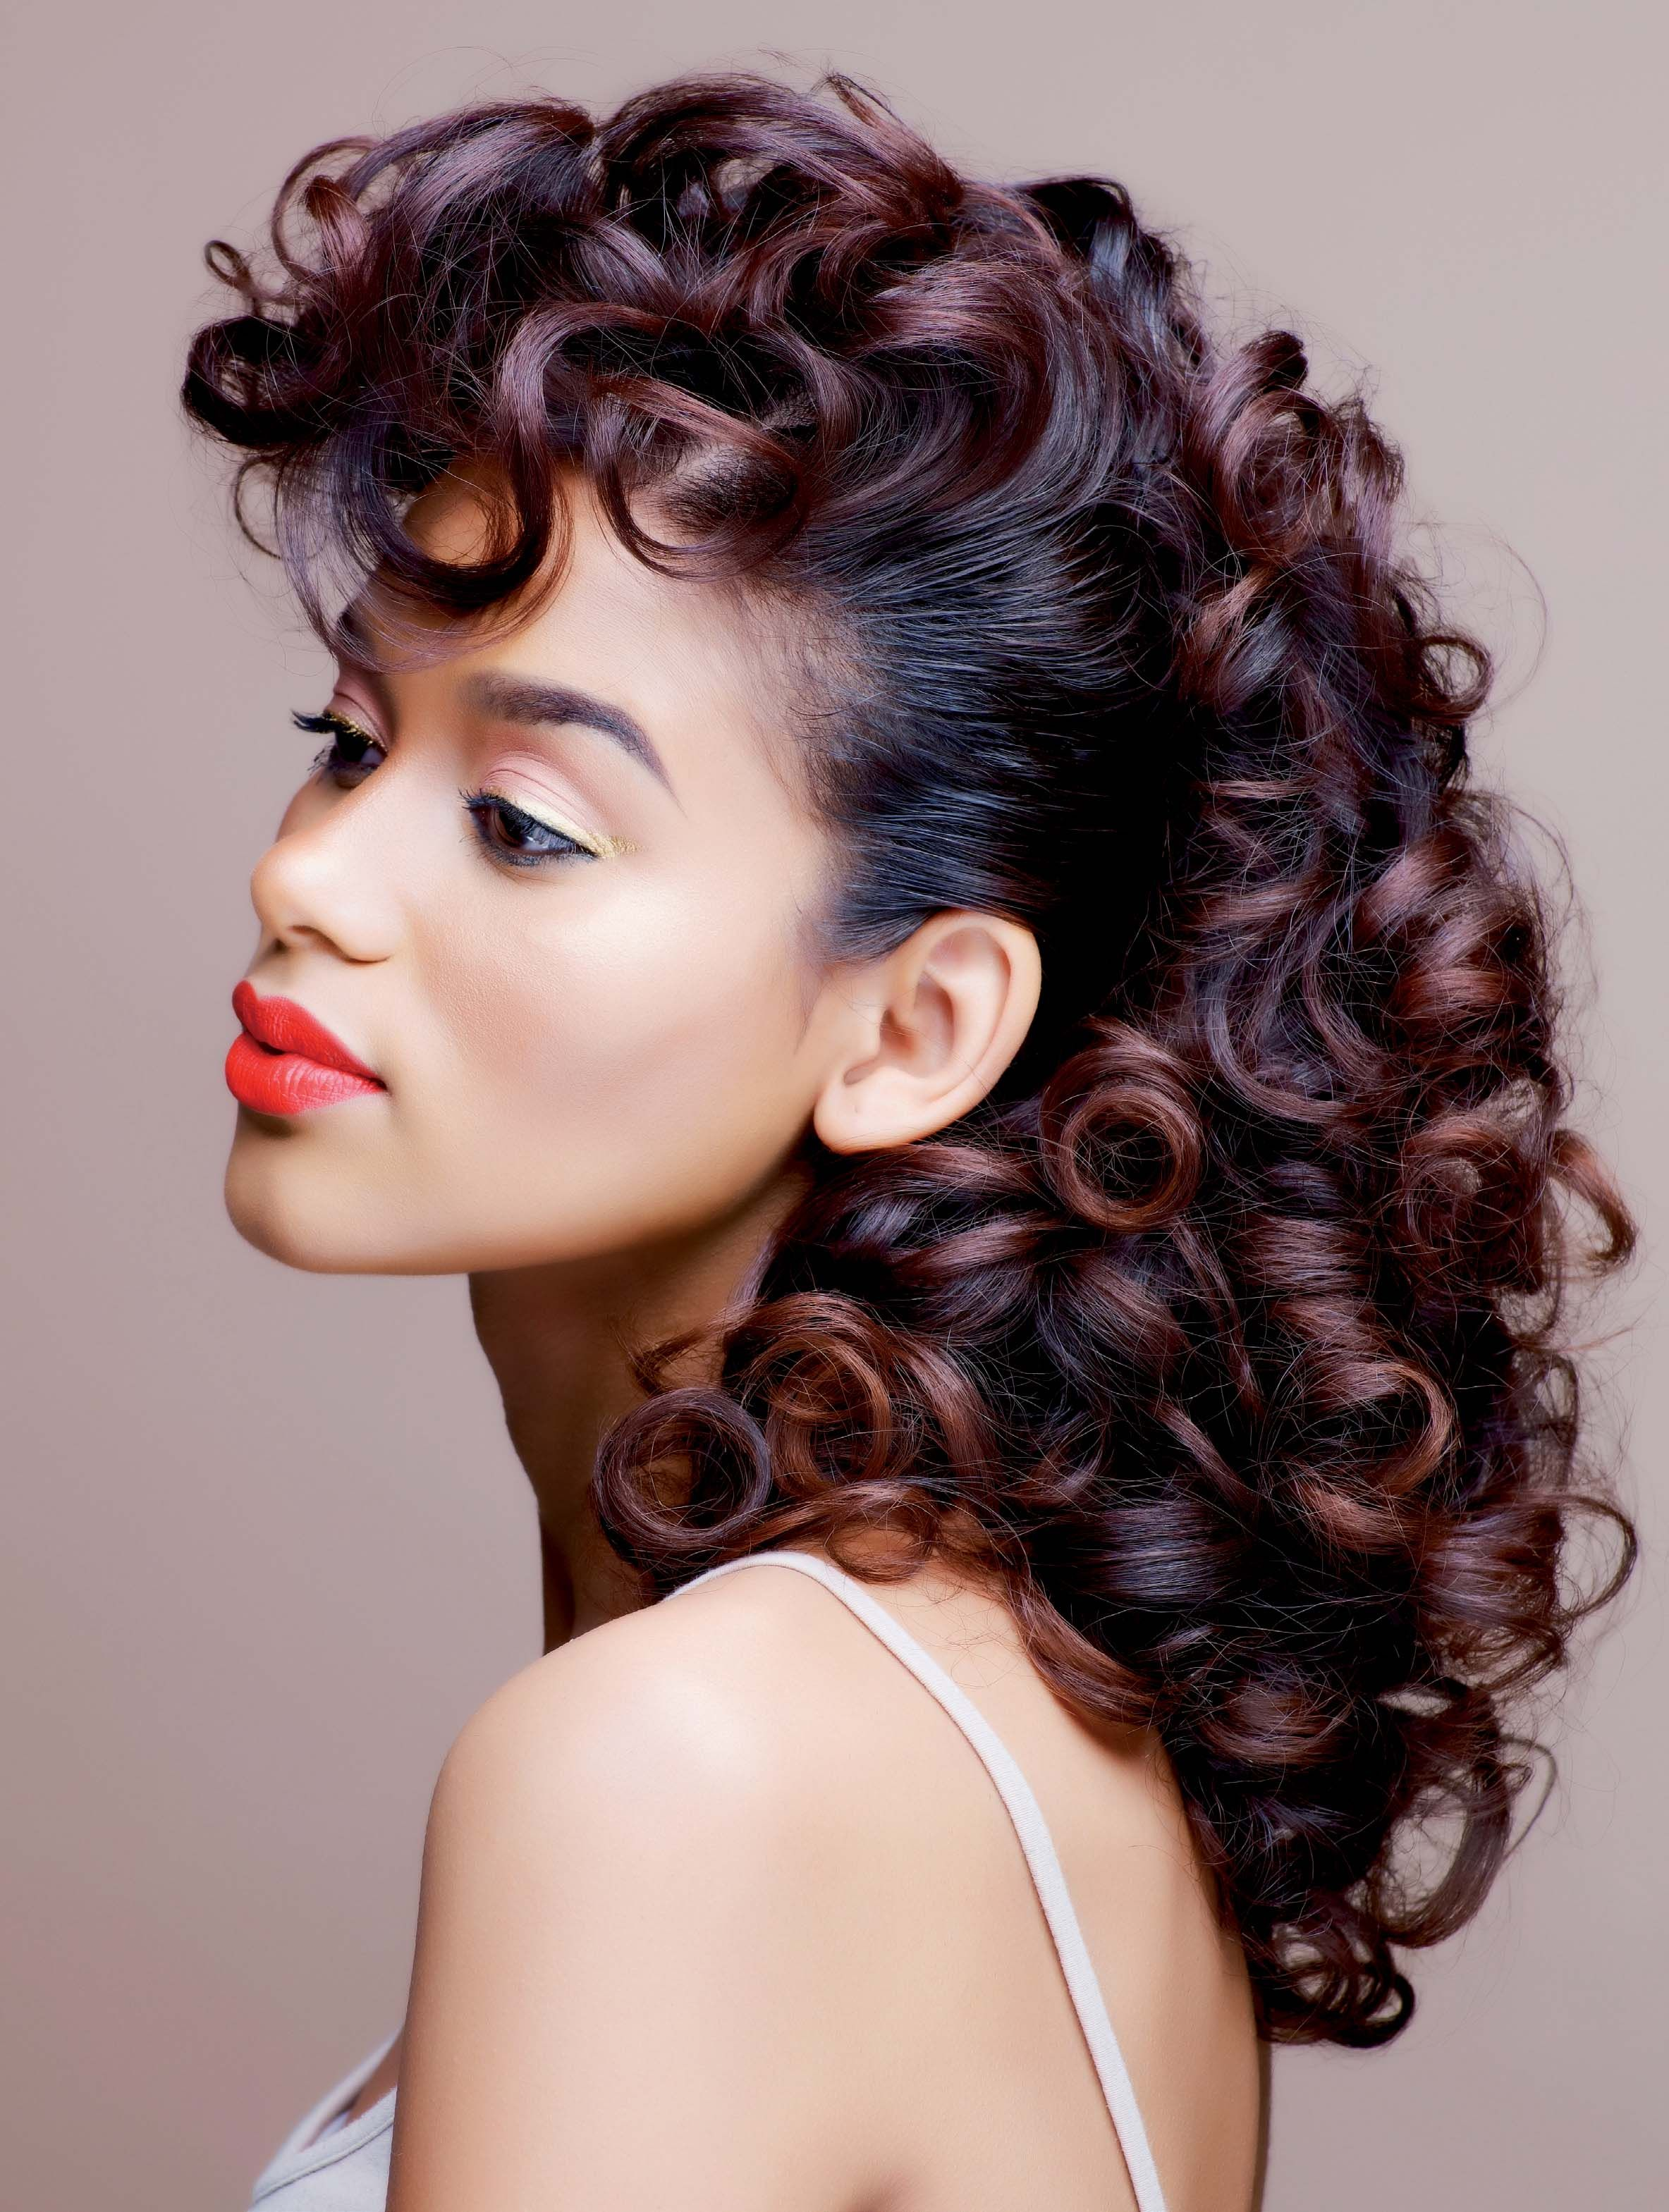 The Curly Set